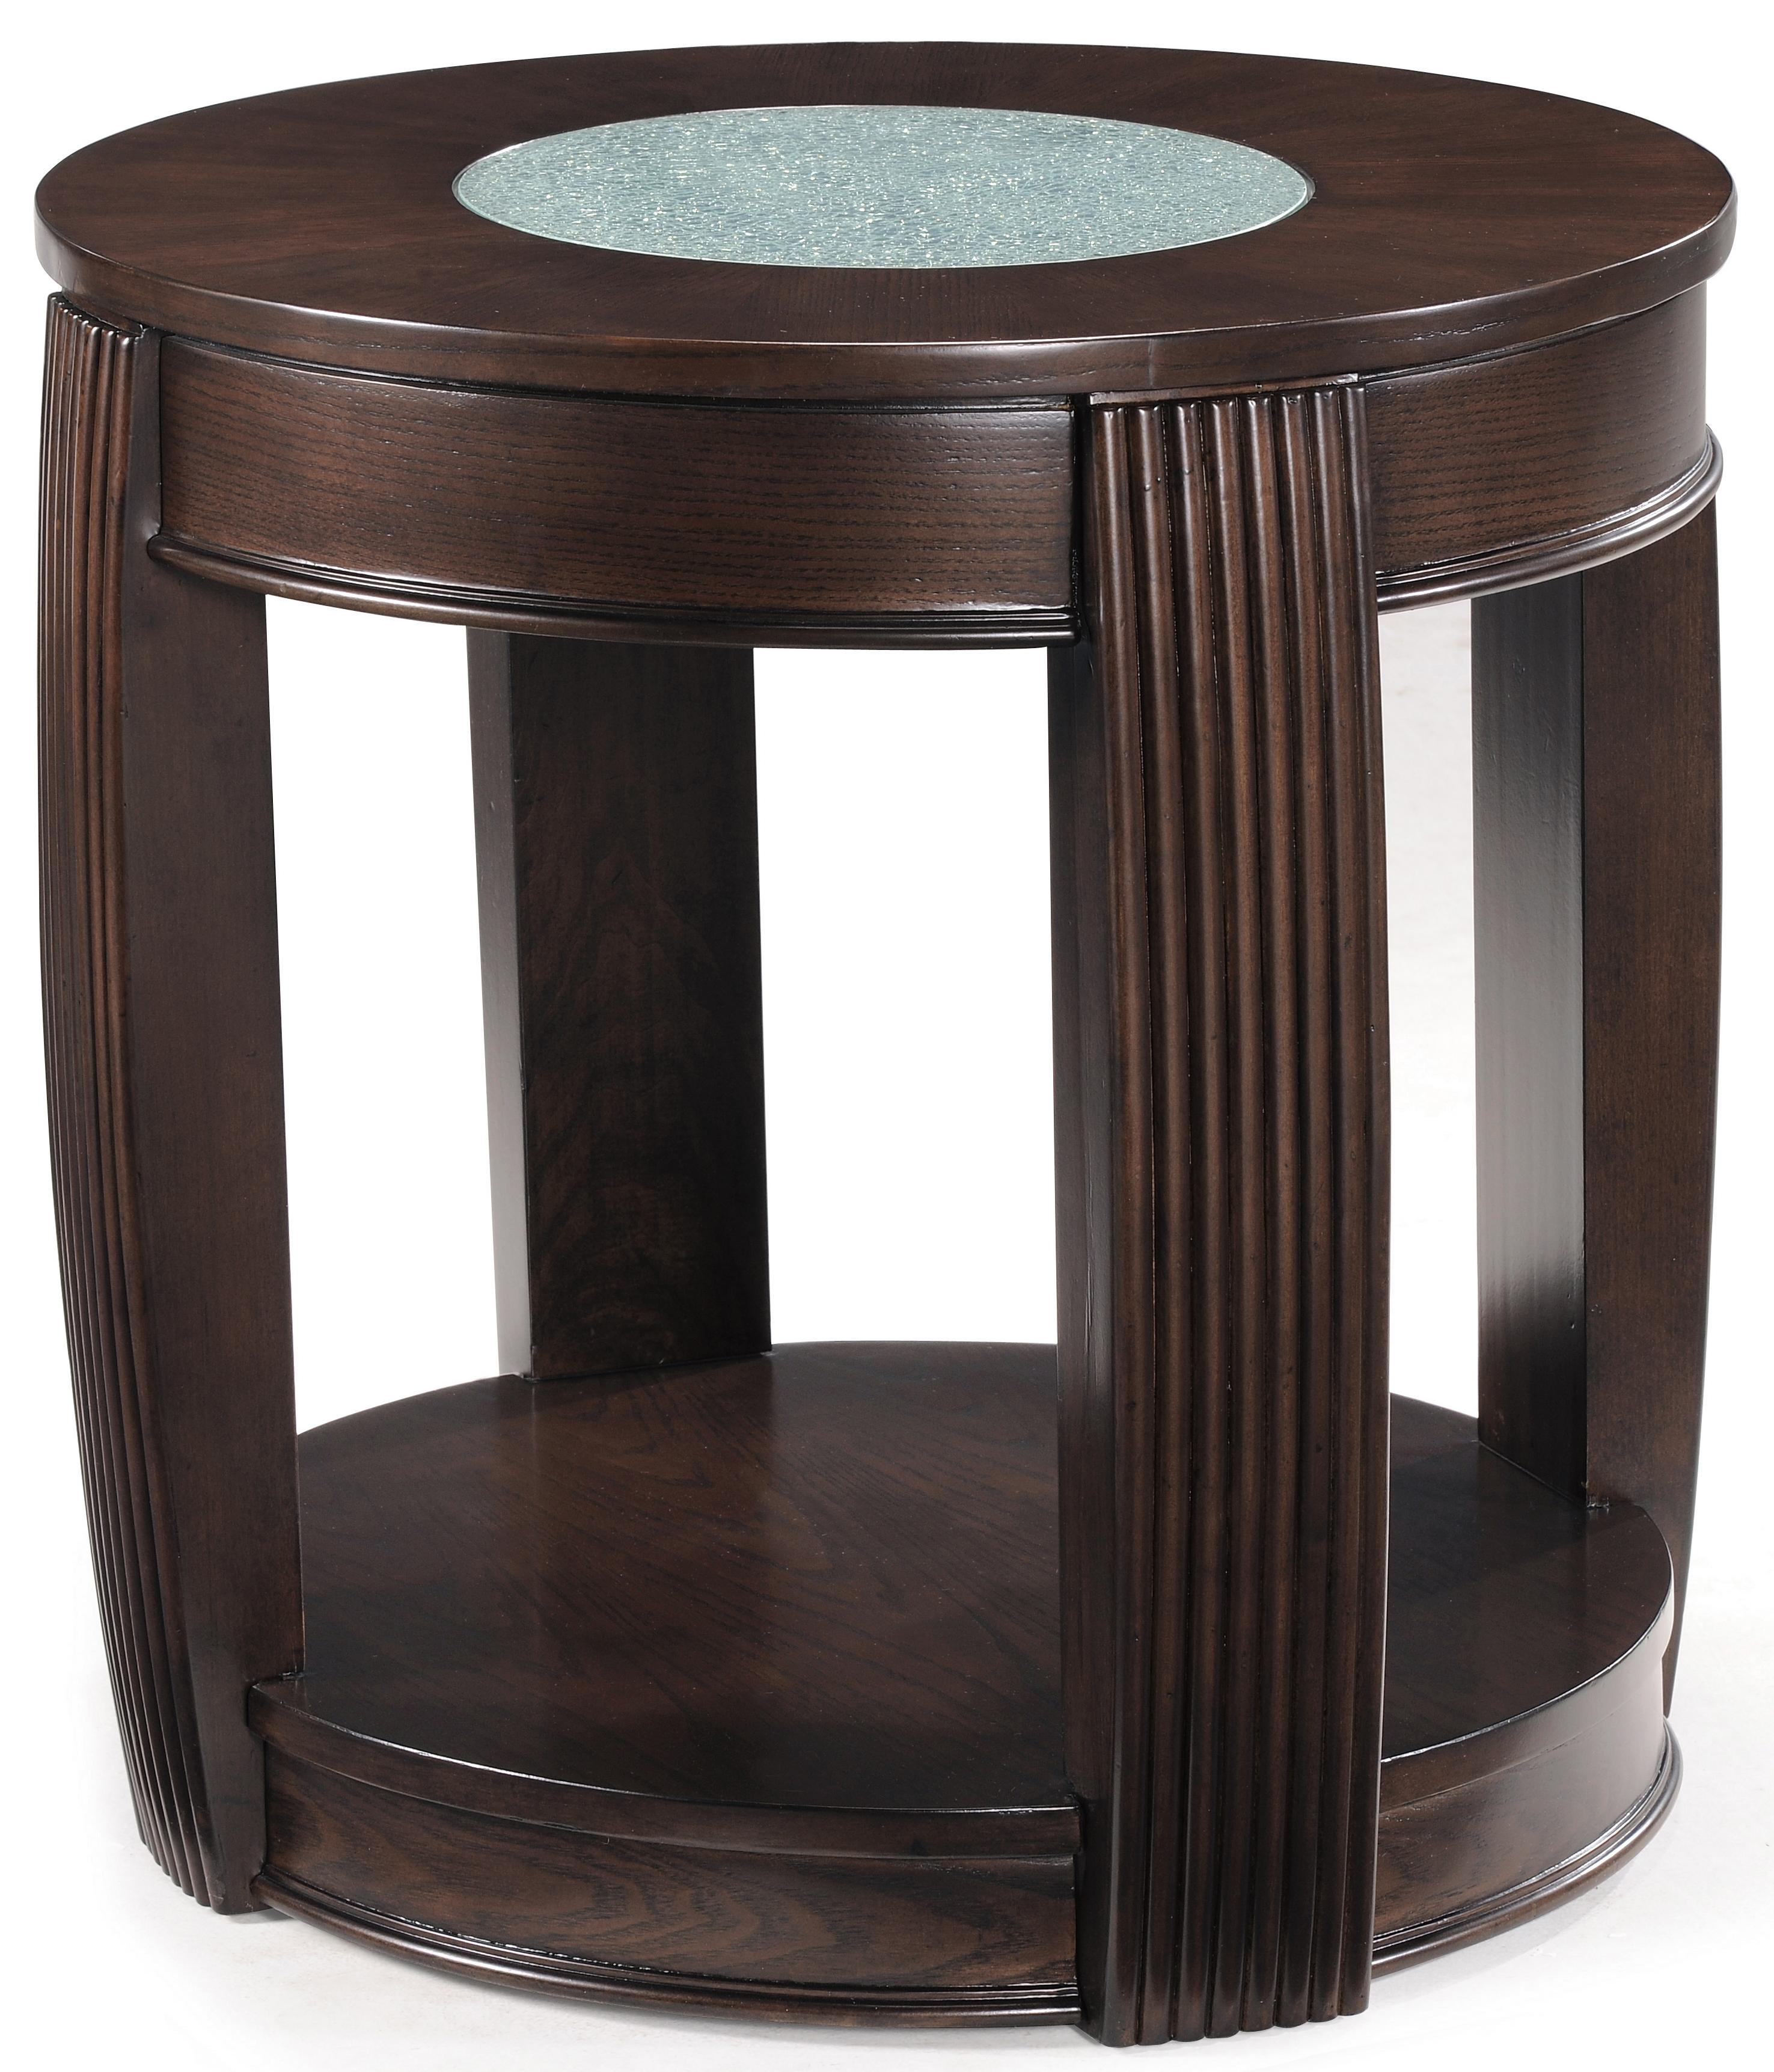 Magnussen Home Ino Oval End Table - Item Number: T1738-07